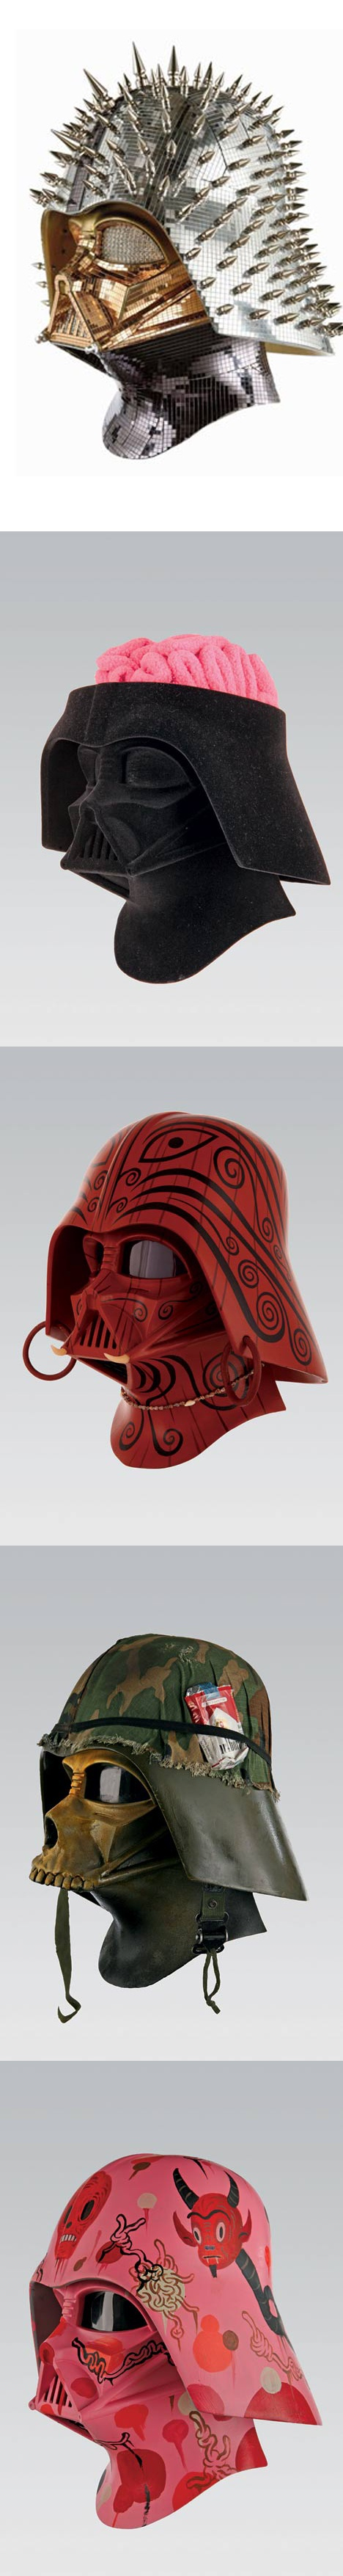 The 100 Helments of the Vader Project:  PlasticGod